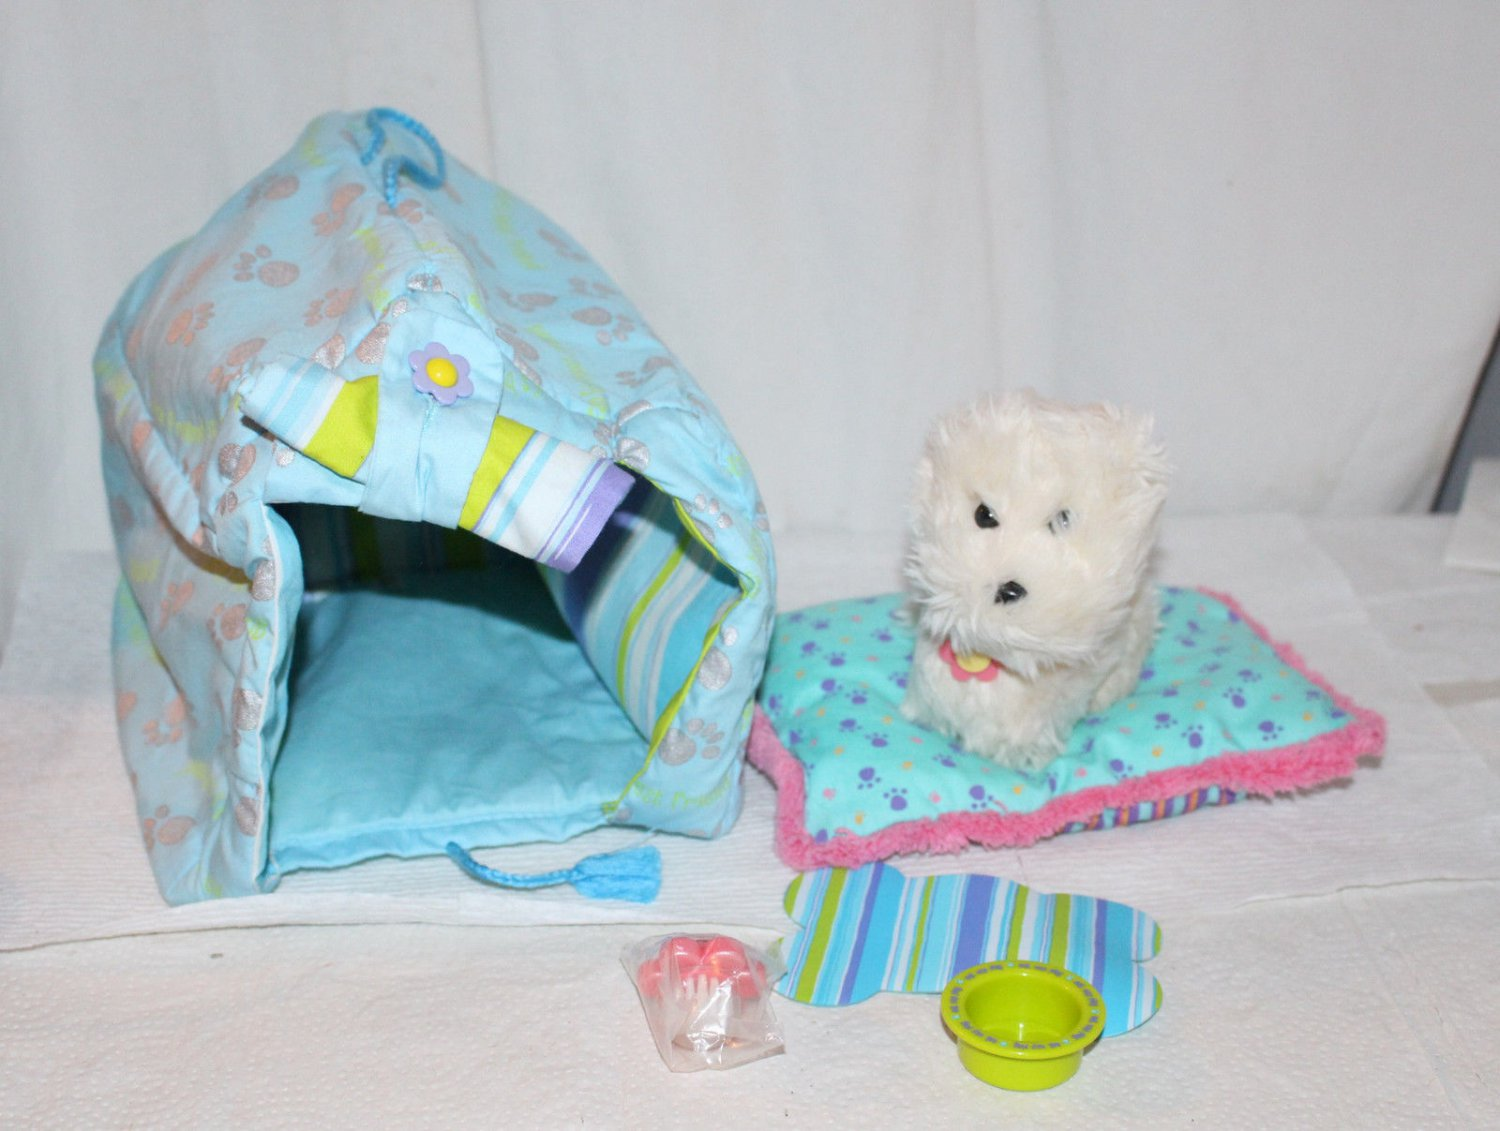 AMERICAN GIRL DOG SPA HOUSE AND ACCESSORIES COCONUT